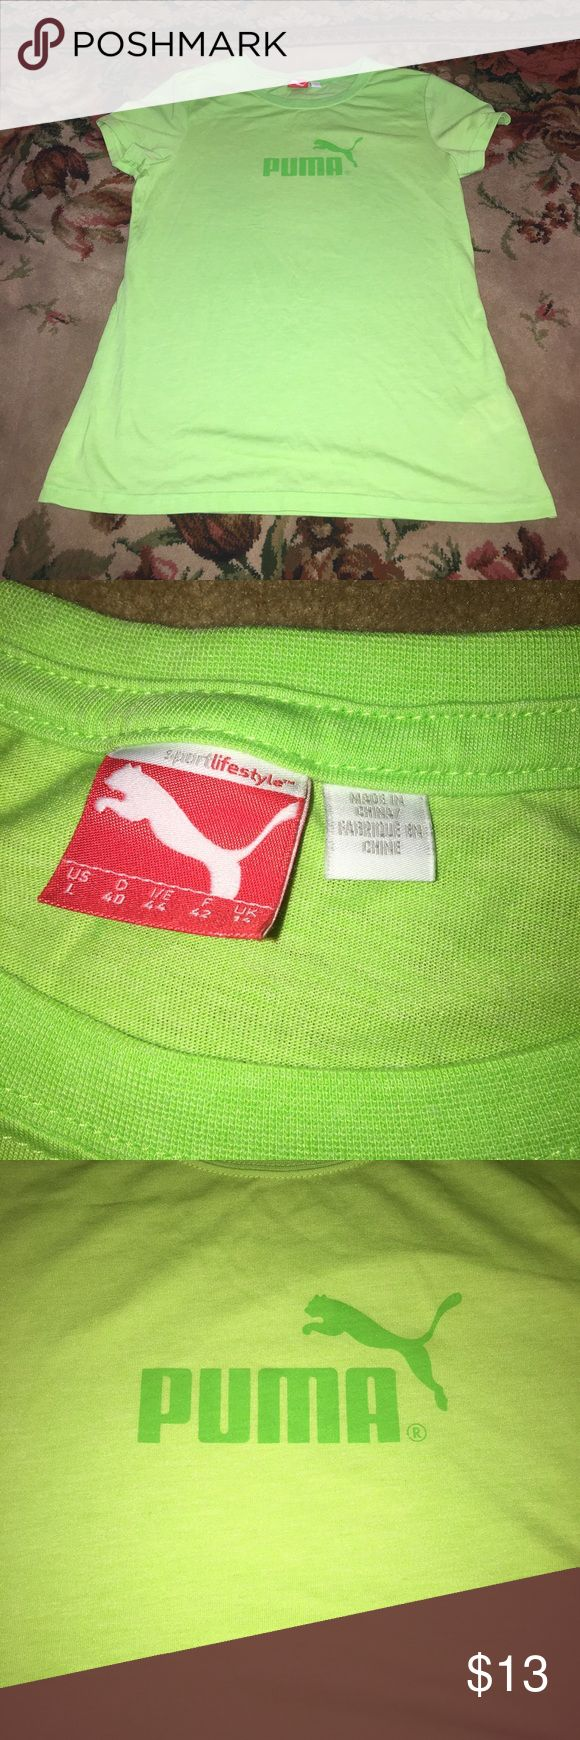 Like new green Puma shirt size large! Comes from a smoke free home! It is in like new condition! Shirt is a size large! Puma Tops Tees - Short Sleeve